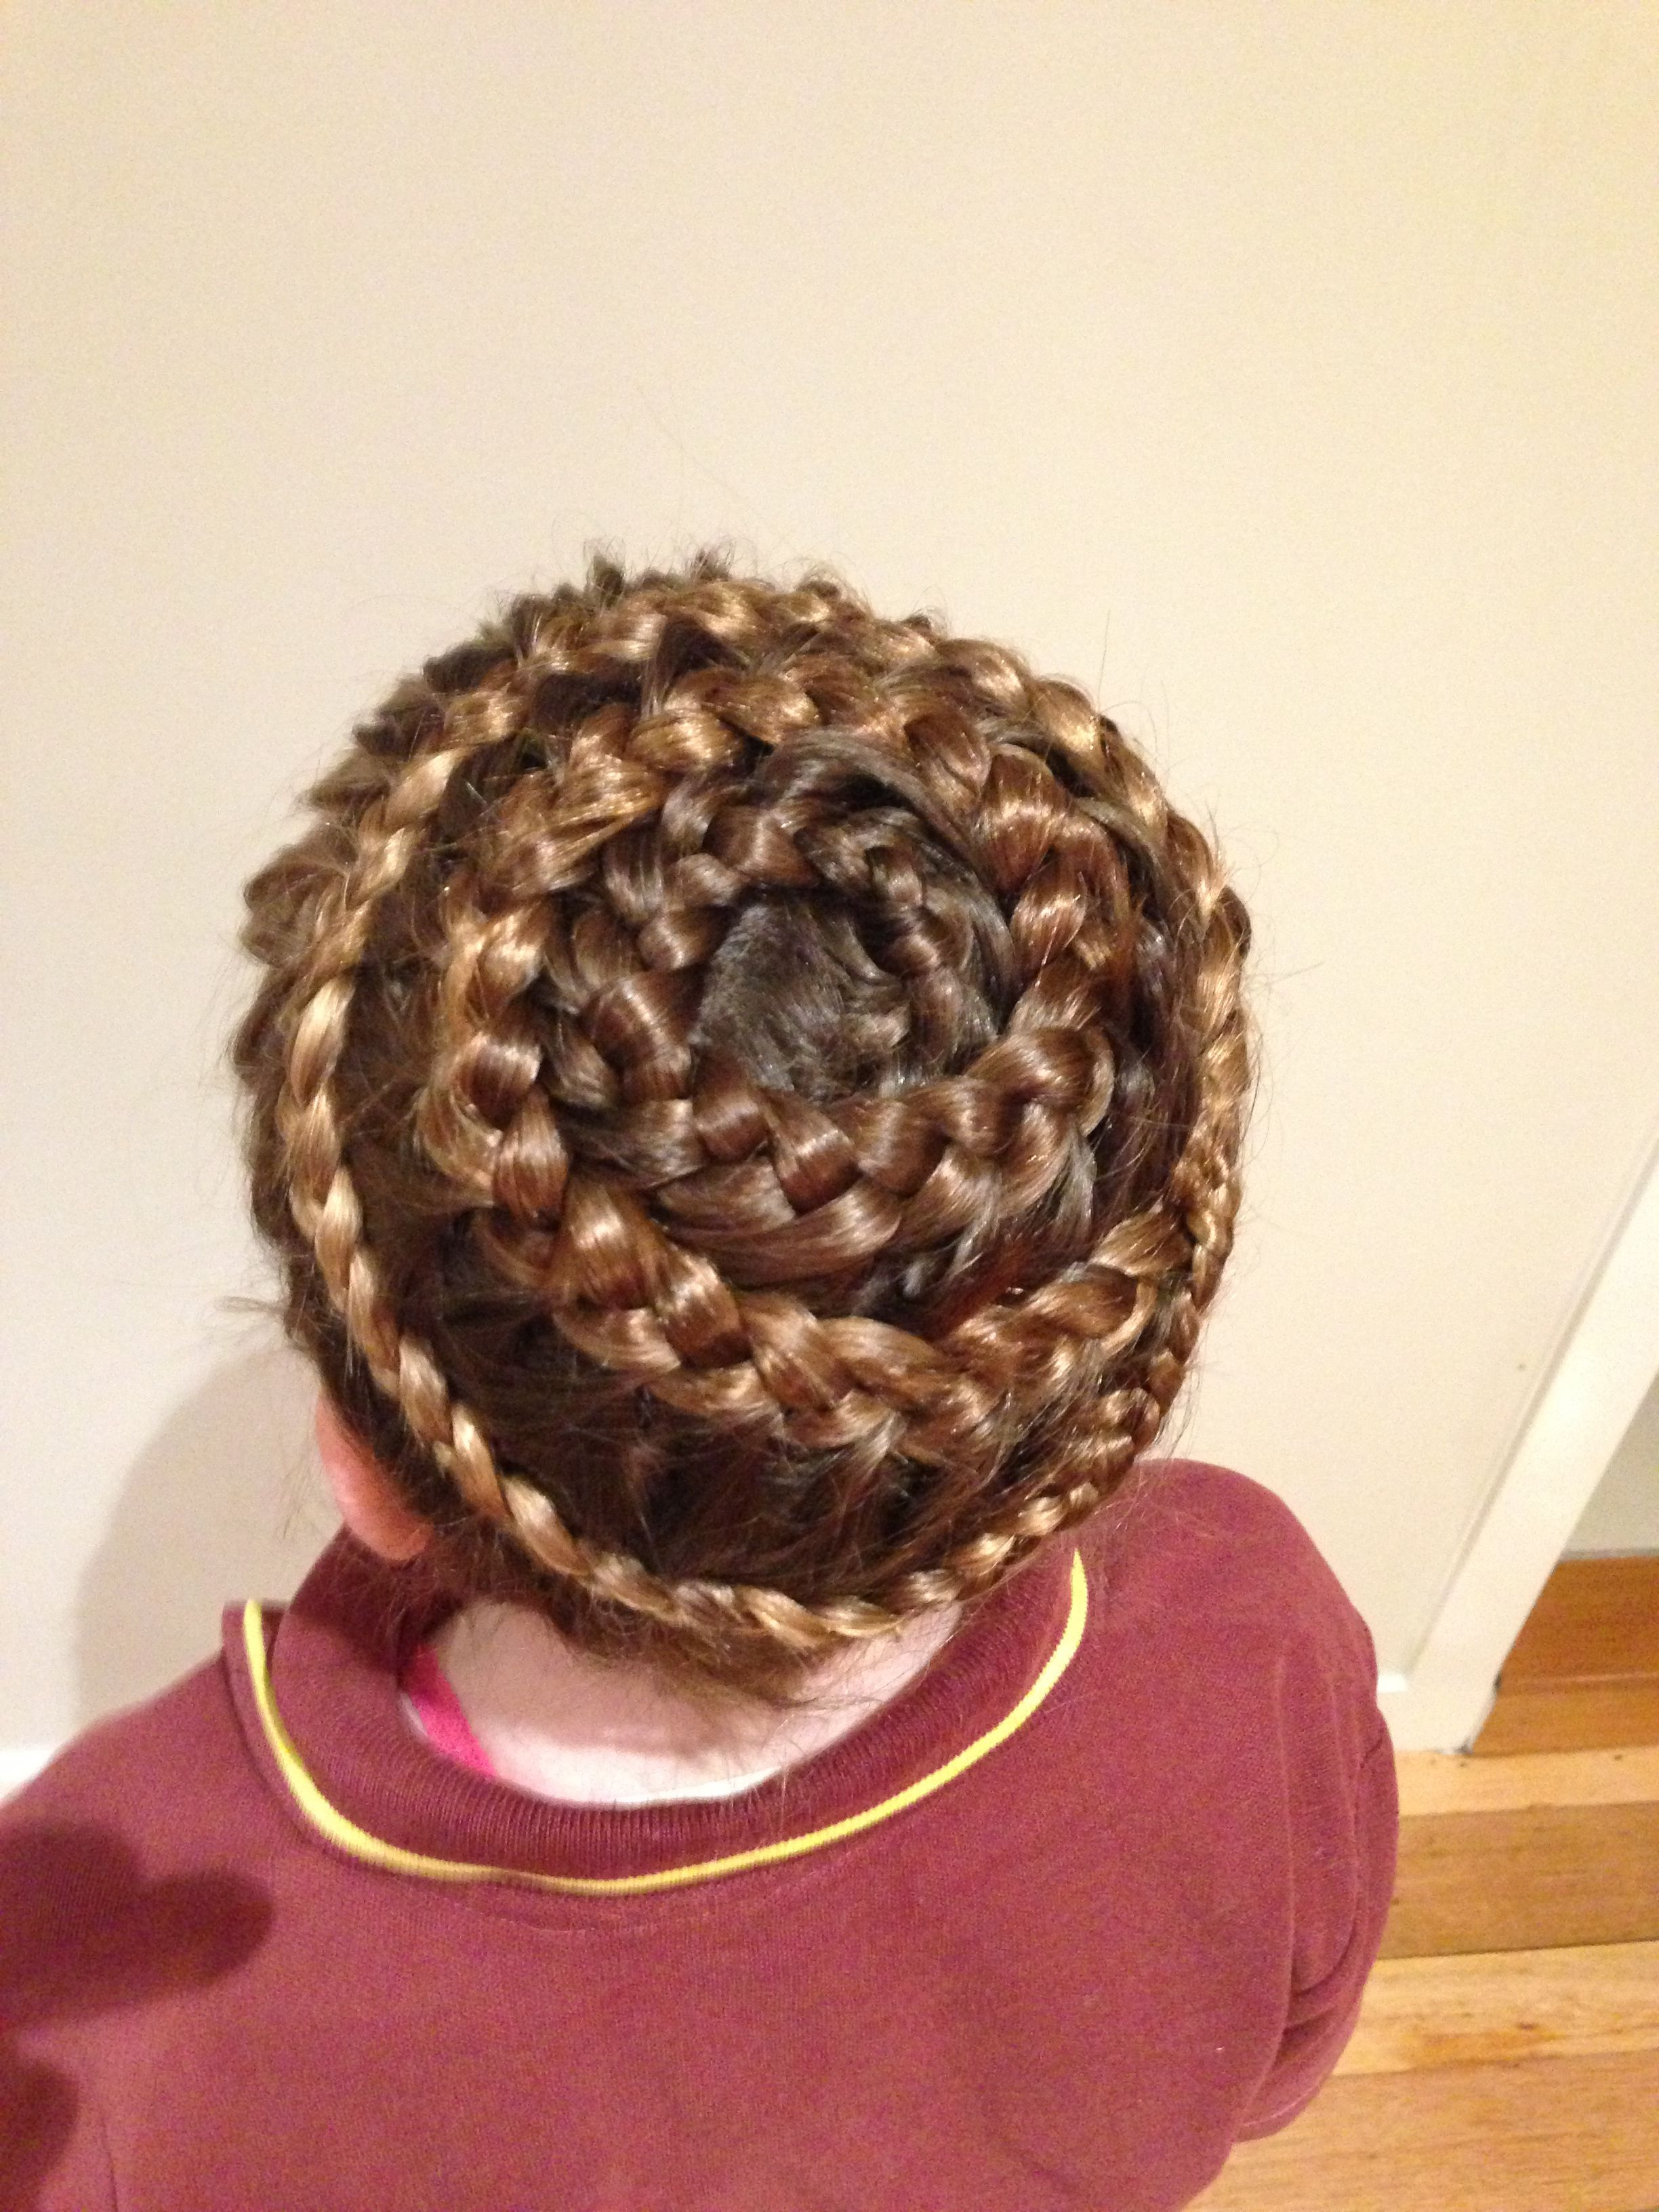 Circle braid kids hair ideas pinterest kid hairstyles circle braid ccuart Gallery